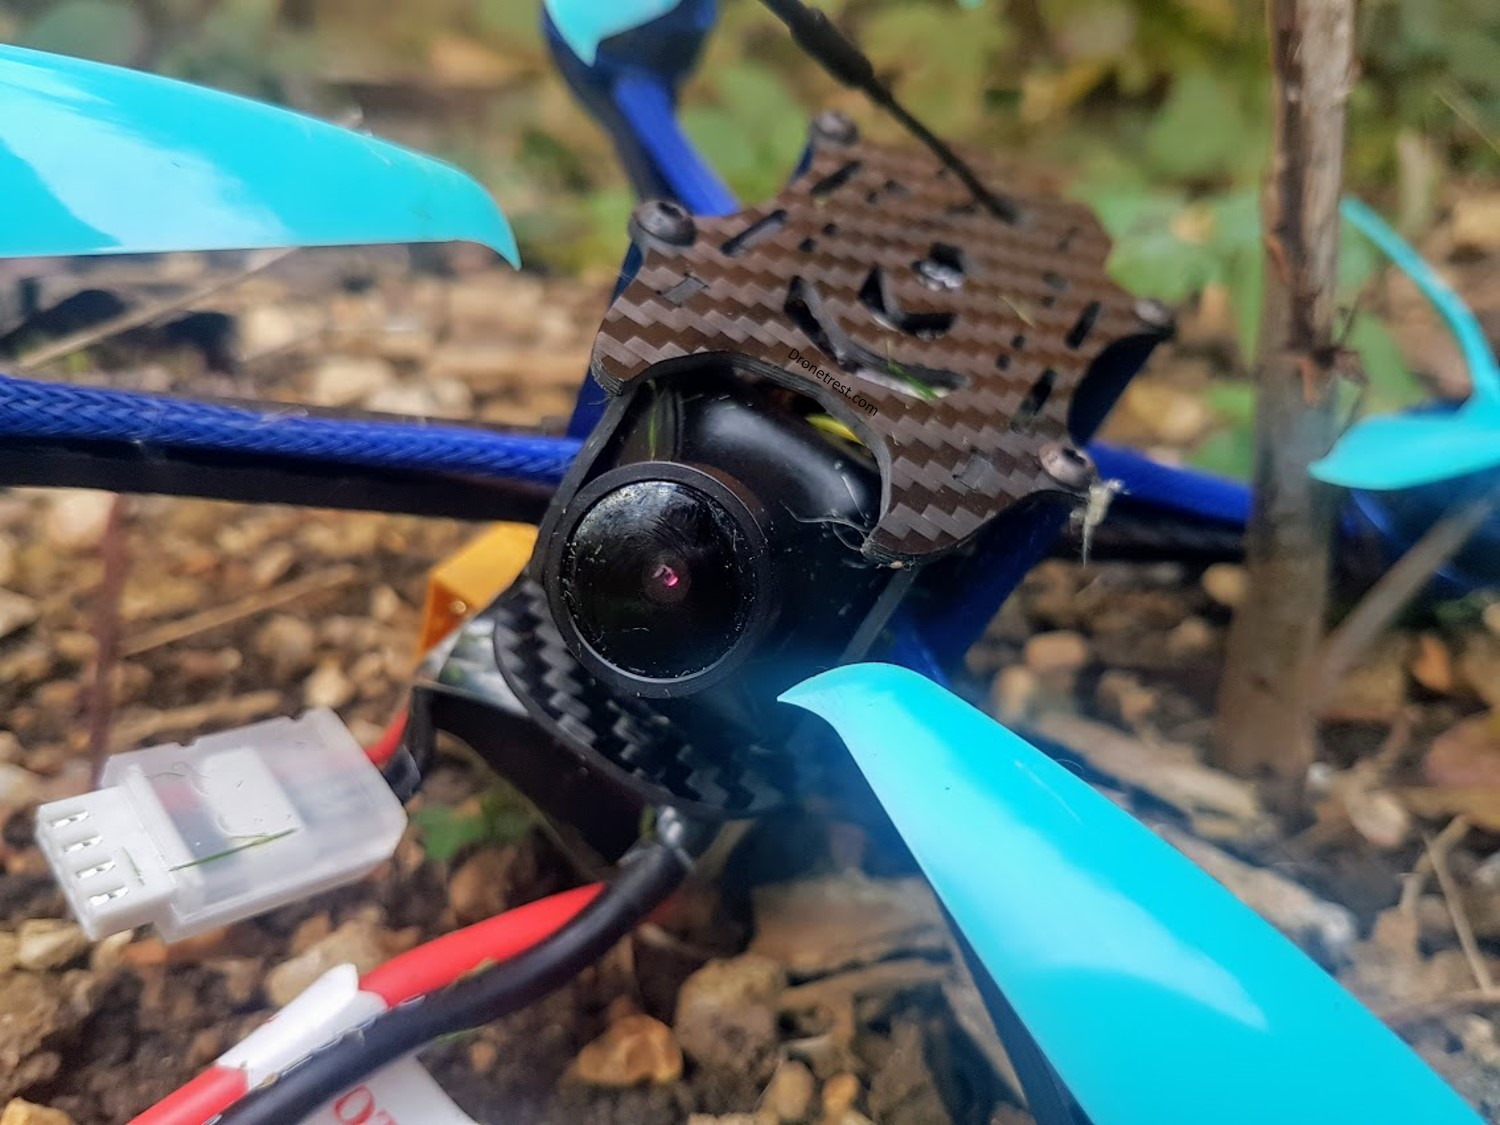 BFlight 210 FPV Quadcopter Review – Light On Your Wallet 💰